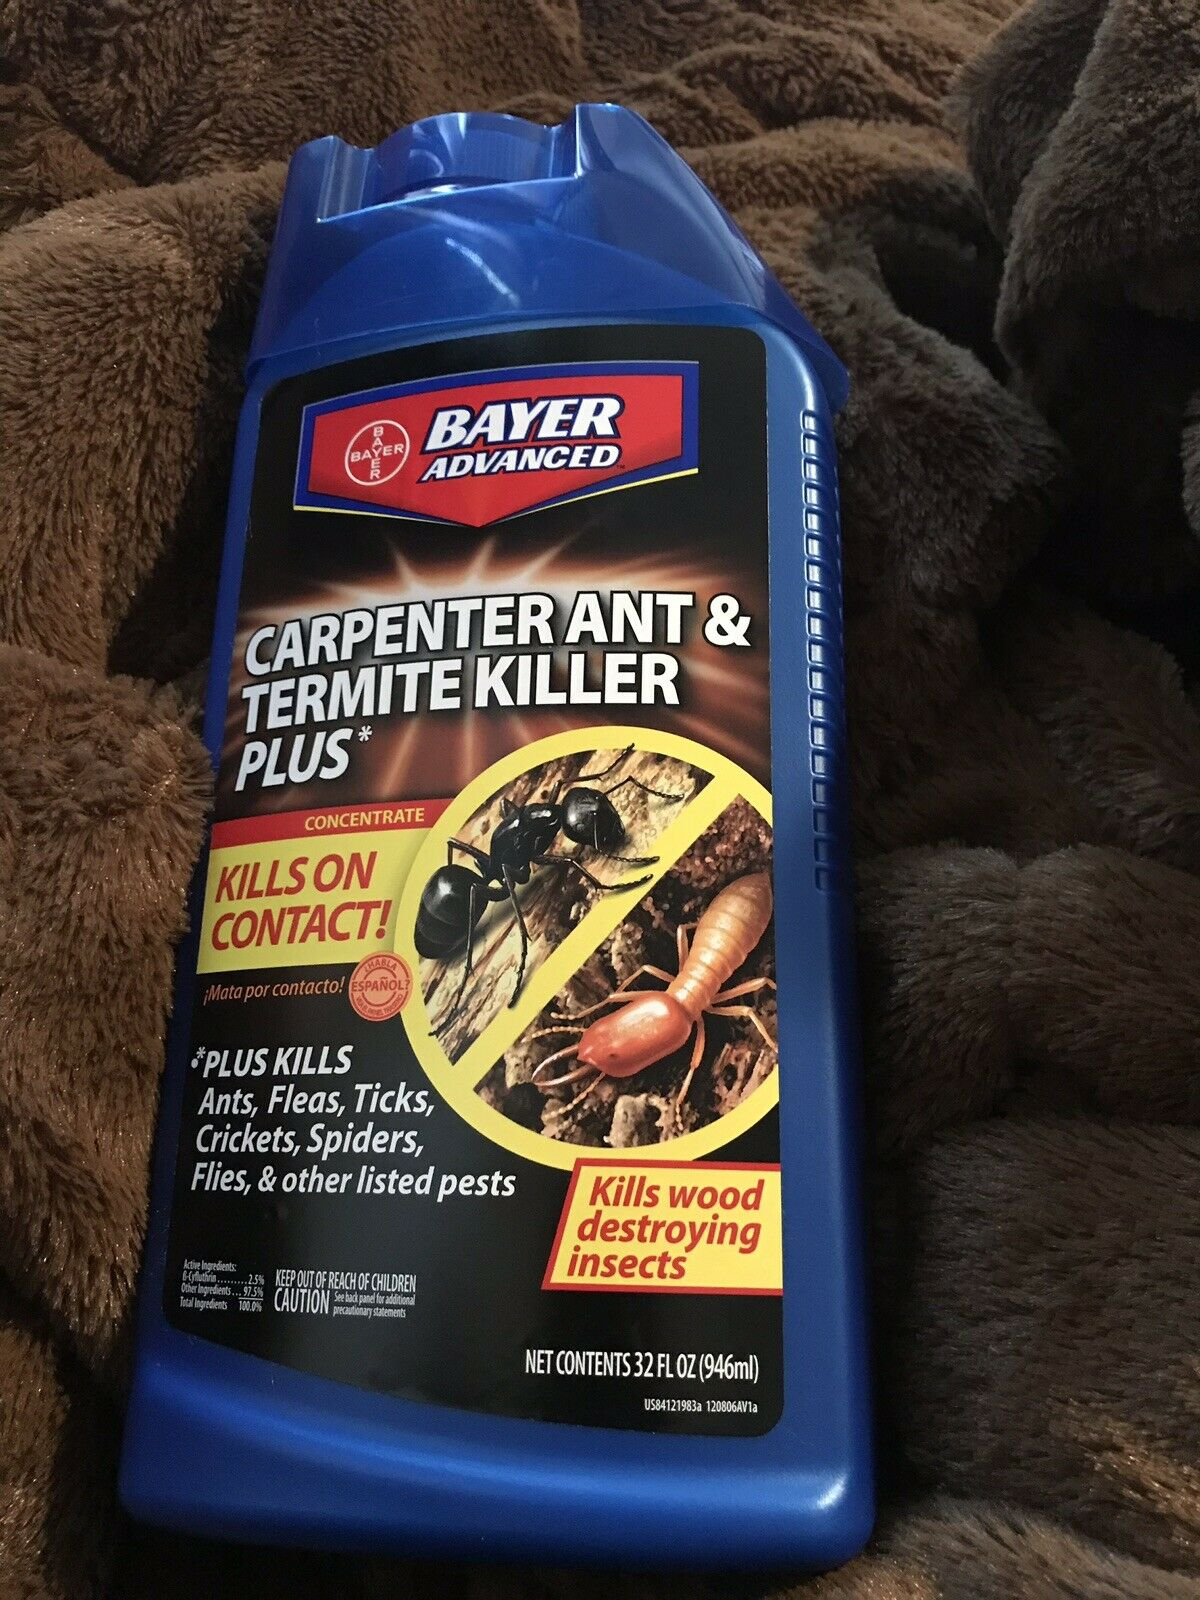 Bayer Advanced 700310 Carpenter Ant And Termite Killer Plus Concentrate For Sale Online Ebay